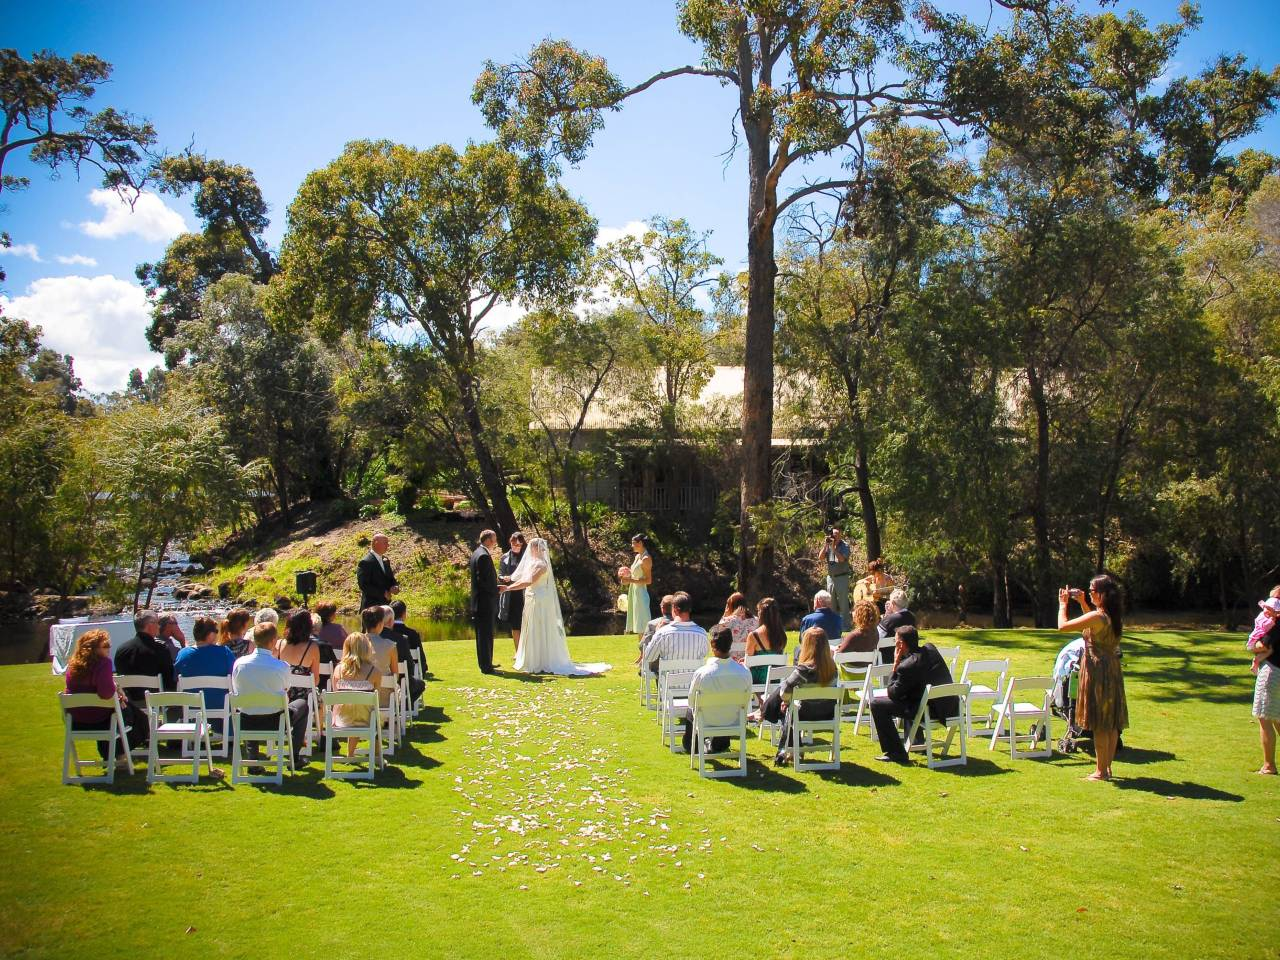 Wedding Ceremony On The Lawn Outside The Building